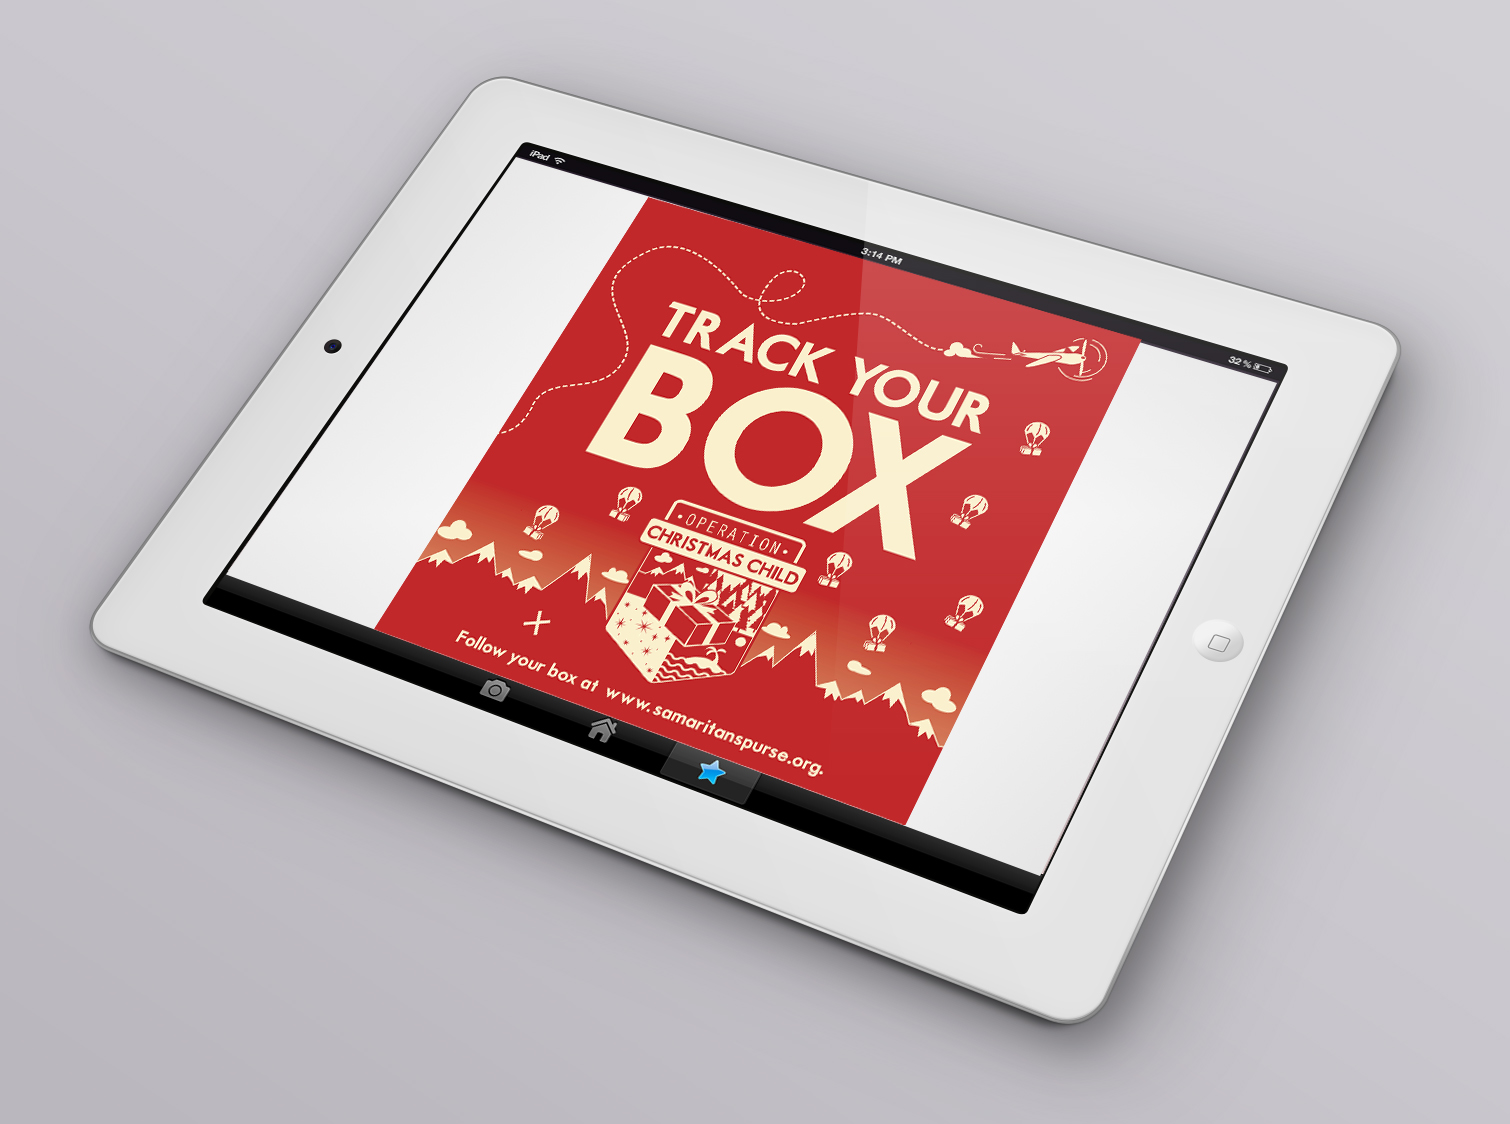 iPad2-White-Perspective-View-Landscape-Mockup_occ1.jpg